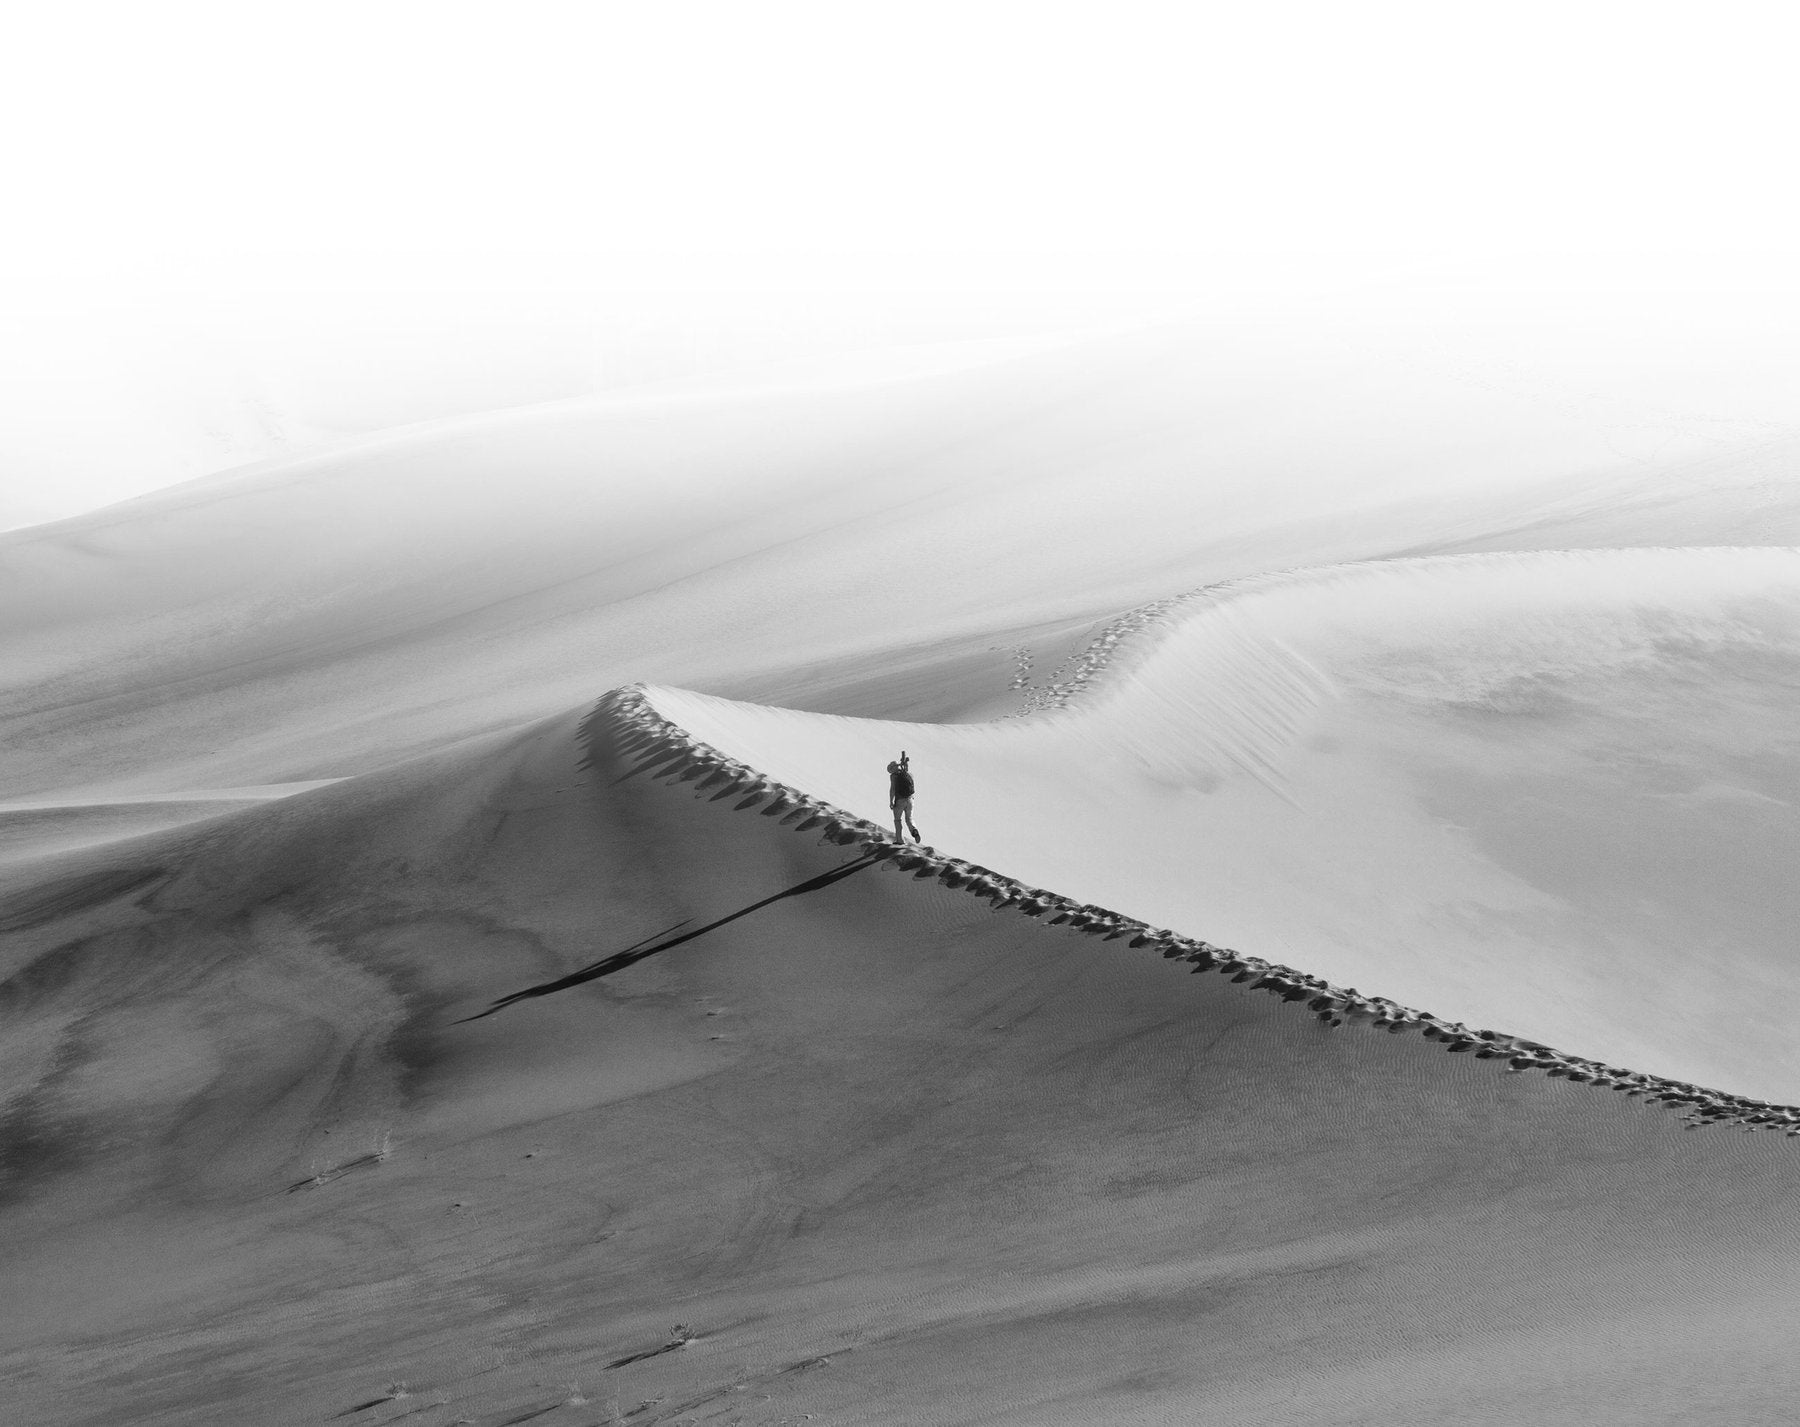 Peter Lik walking across the Mesquite Flat Sand Dunes in Death Valley National Park in California.